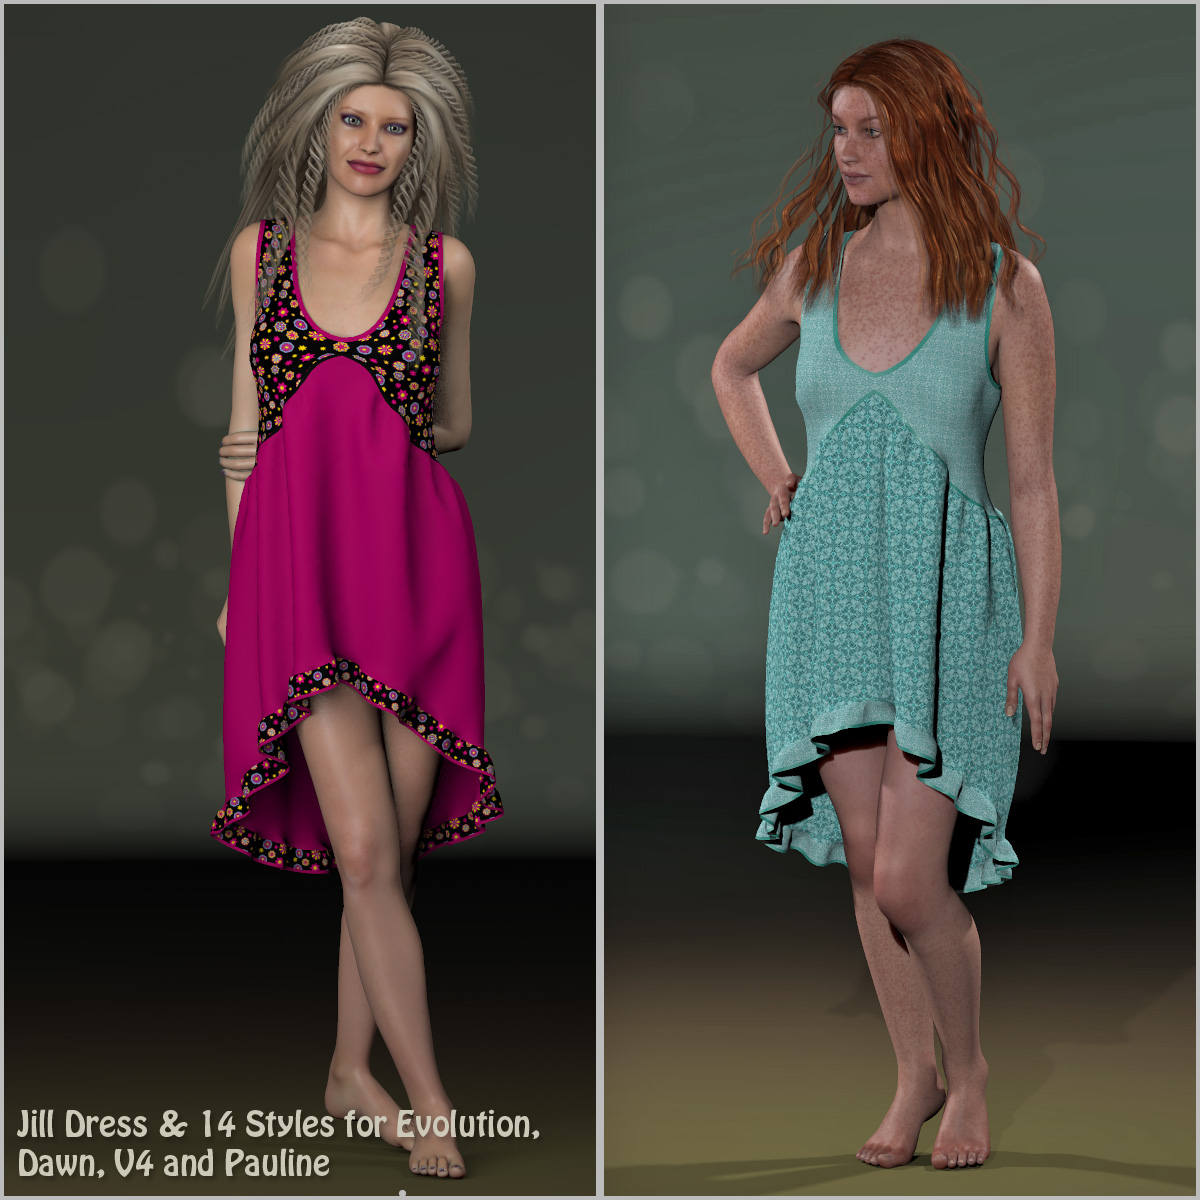 Jill Dress and 14 Styles for Evolution, V4, Dawn and Pauline